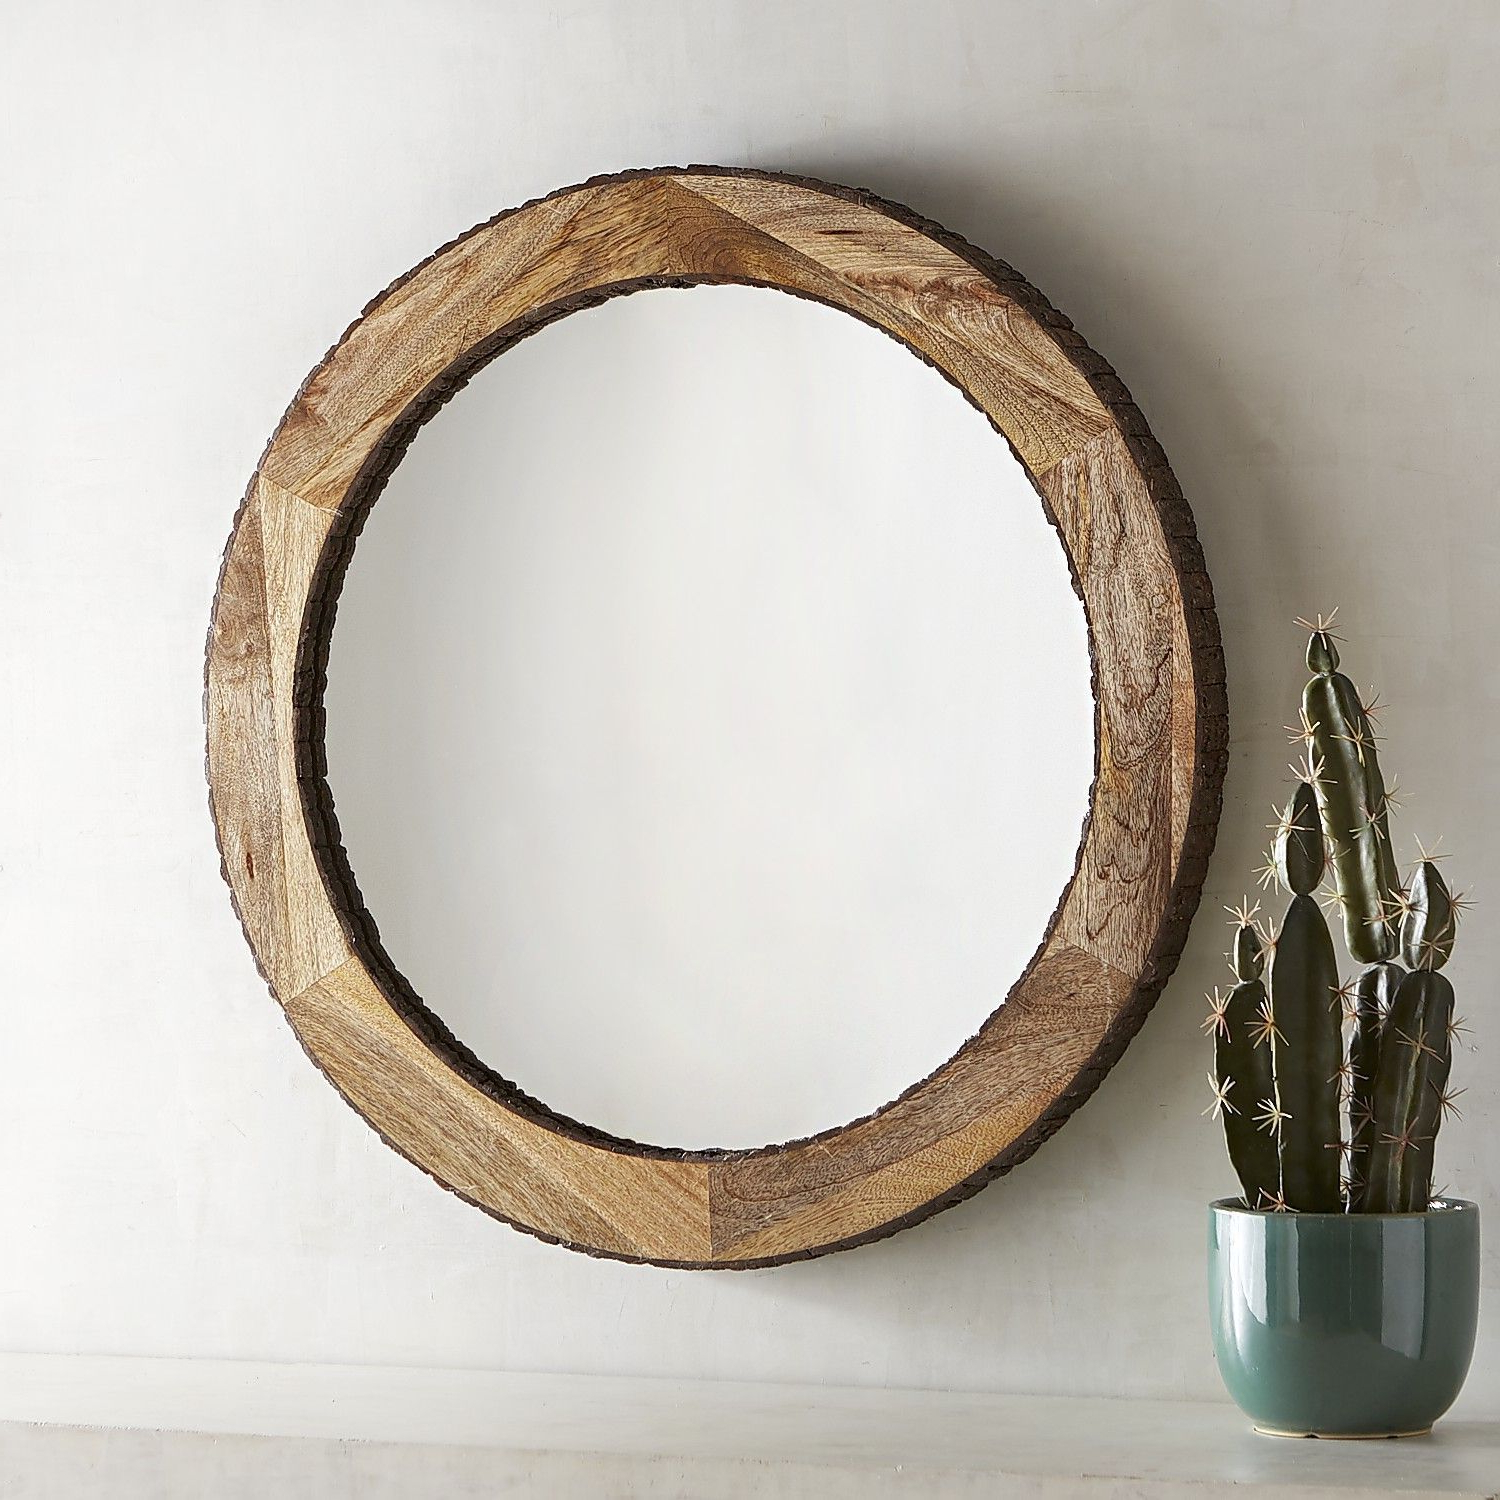 Fashionable Large Wall Mirrors With Wood Frame With Engaging Wood Frame Ledge Round Wall Mirror Smoke Modern (View 17 of 20)